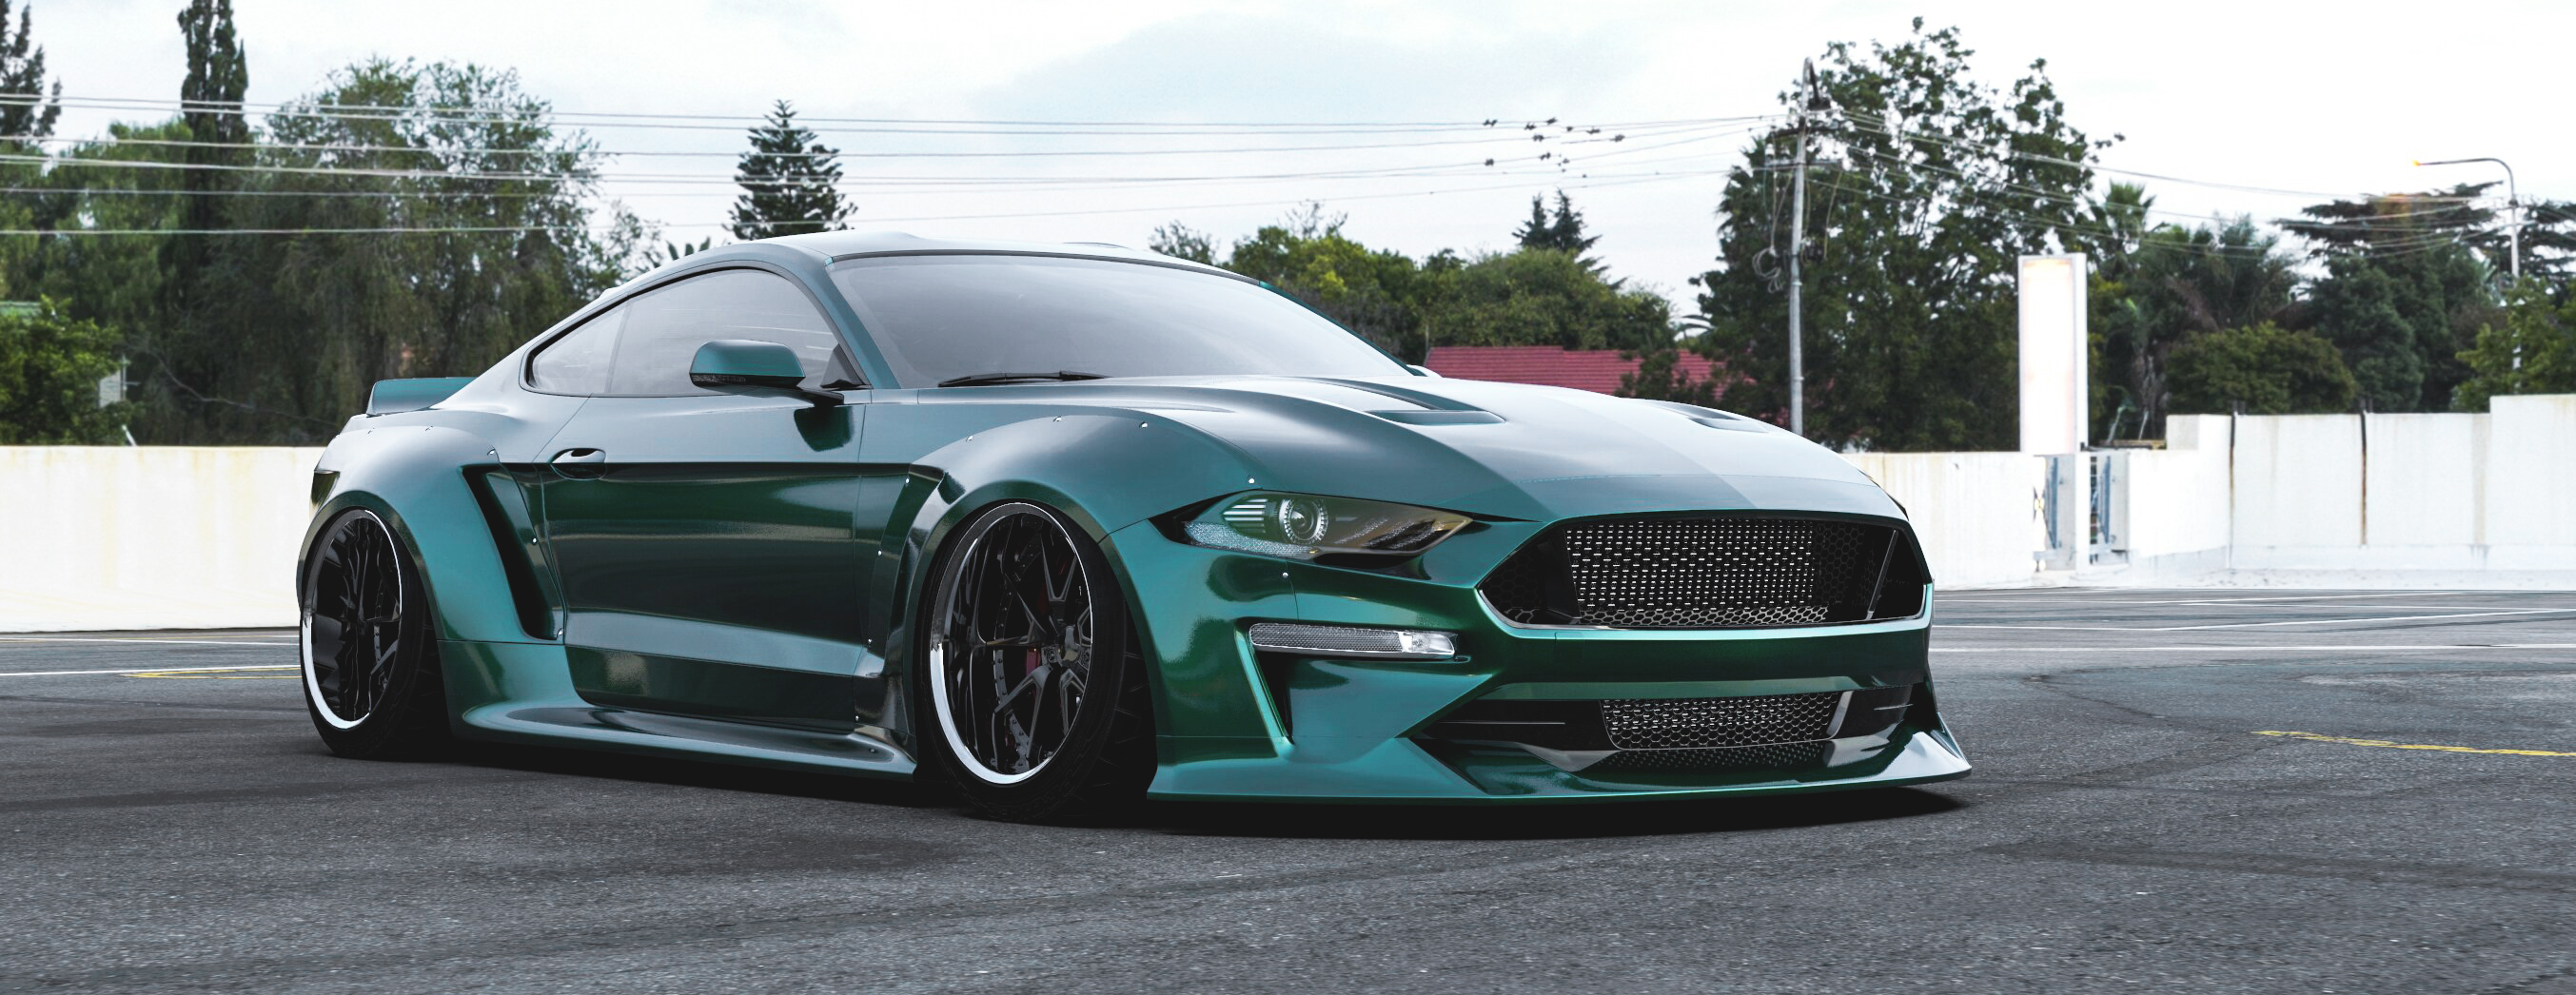 Ford Mustang Ecoboost >> 2018 Ford Mustang widebody kit, fits 2018+ Ford Mustang GT, EcoBoost